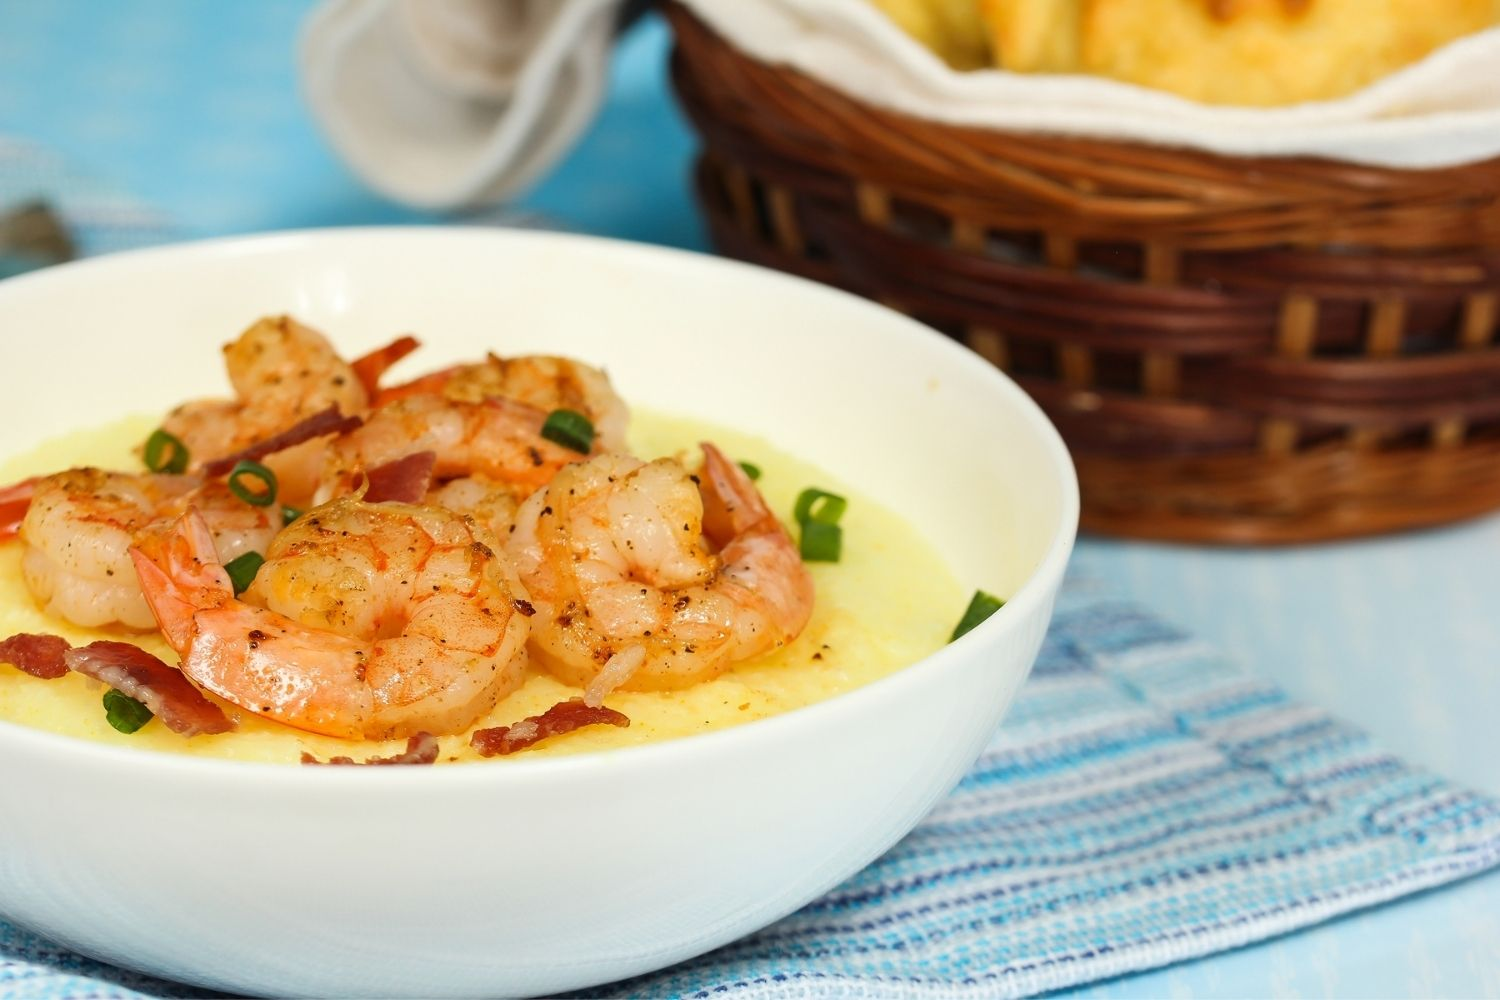 Shrimp and Grits at Red Rooster Cafe is one of the best restaurants in Beaufort